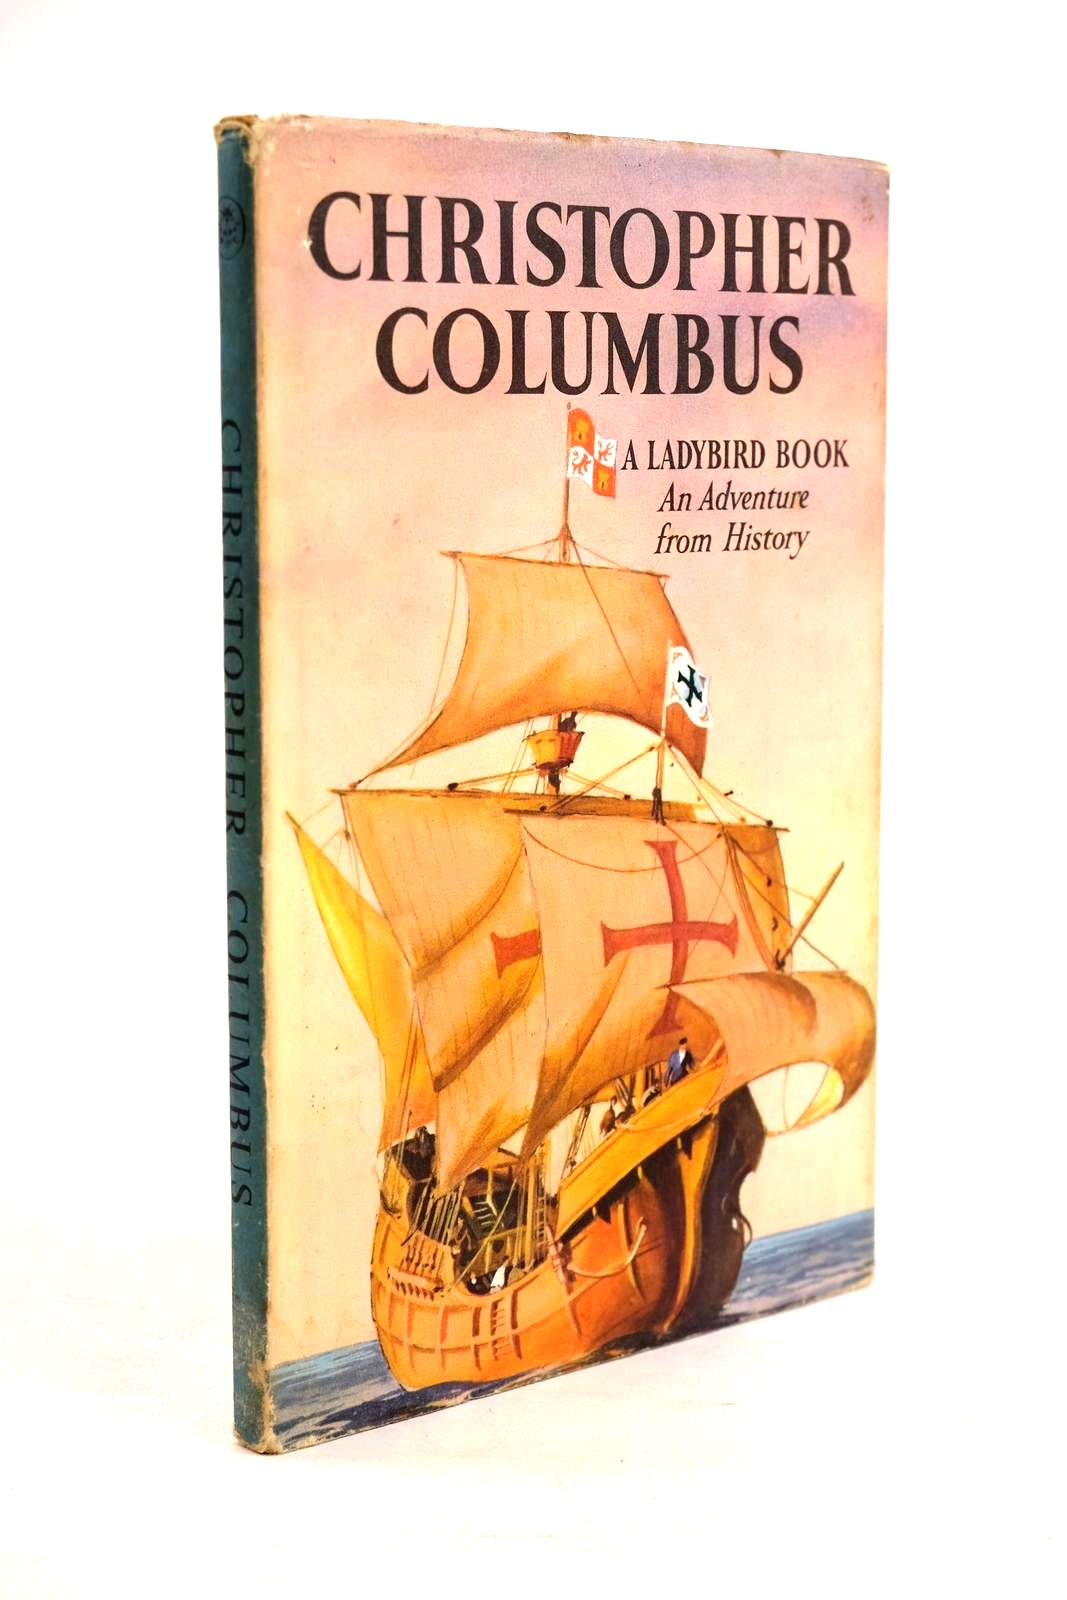 Photo of CHRISTOPHER COLUMBUS written by Peach, L. Du Garde illustrated by Kenney, John published by Wills & Hepworth Ltd. (STOCK CODE: 1320626)  for sale by Stella & Rose's Books